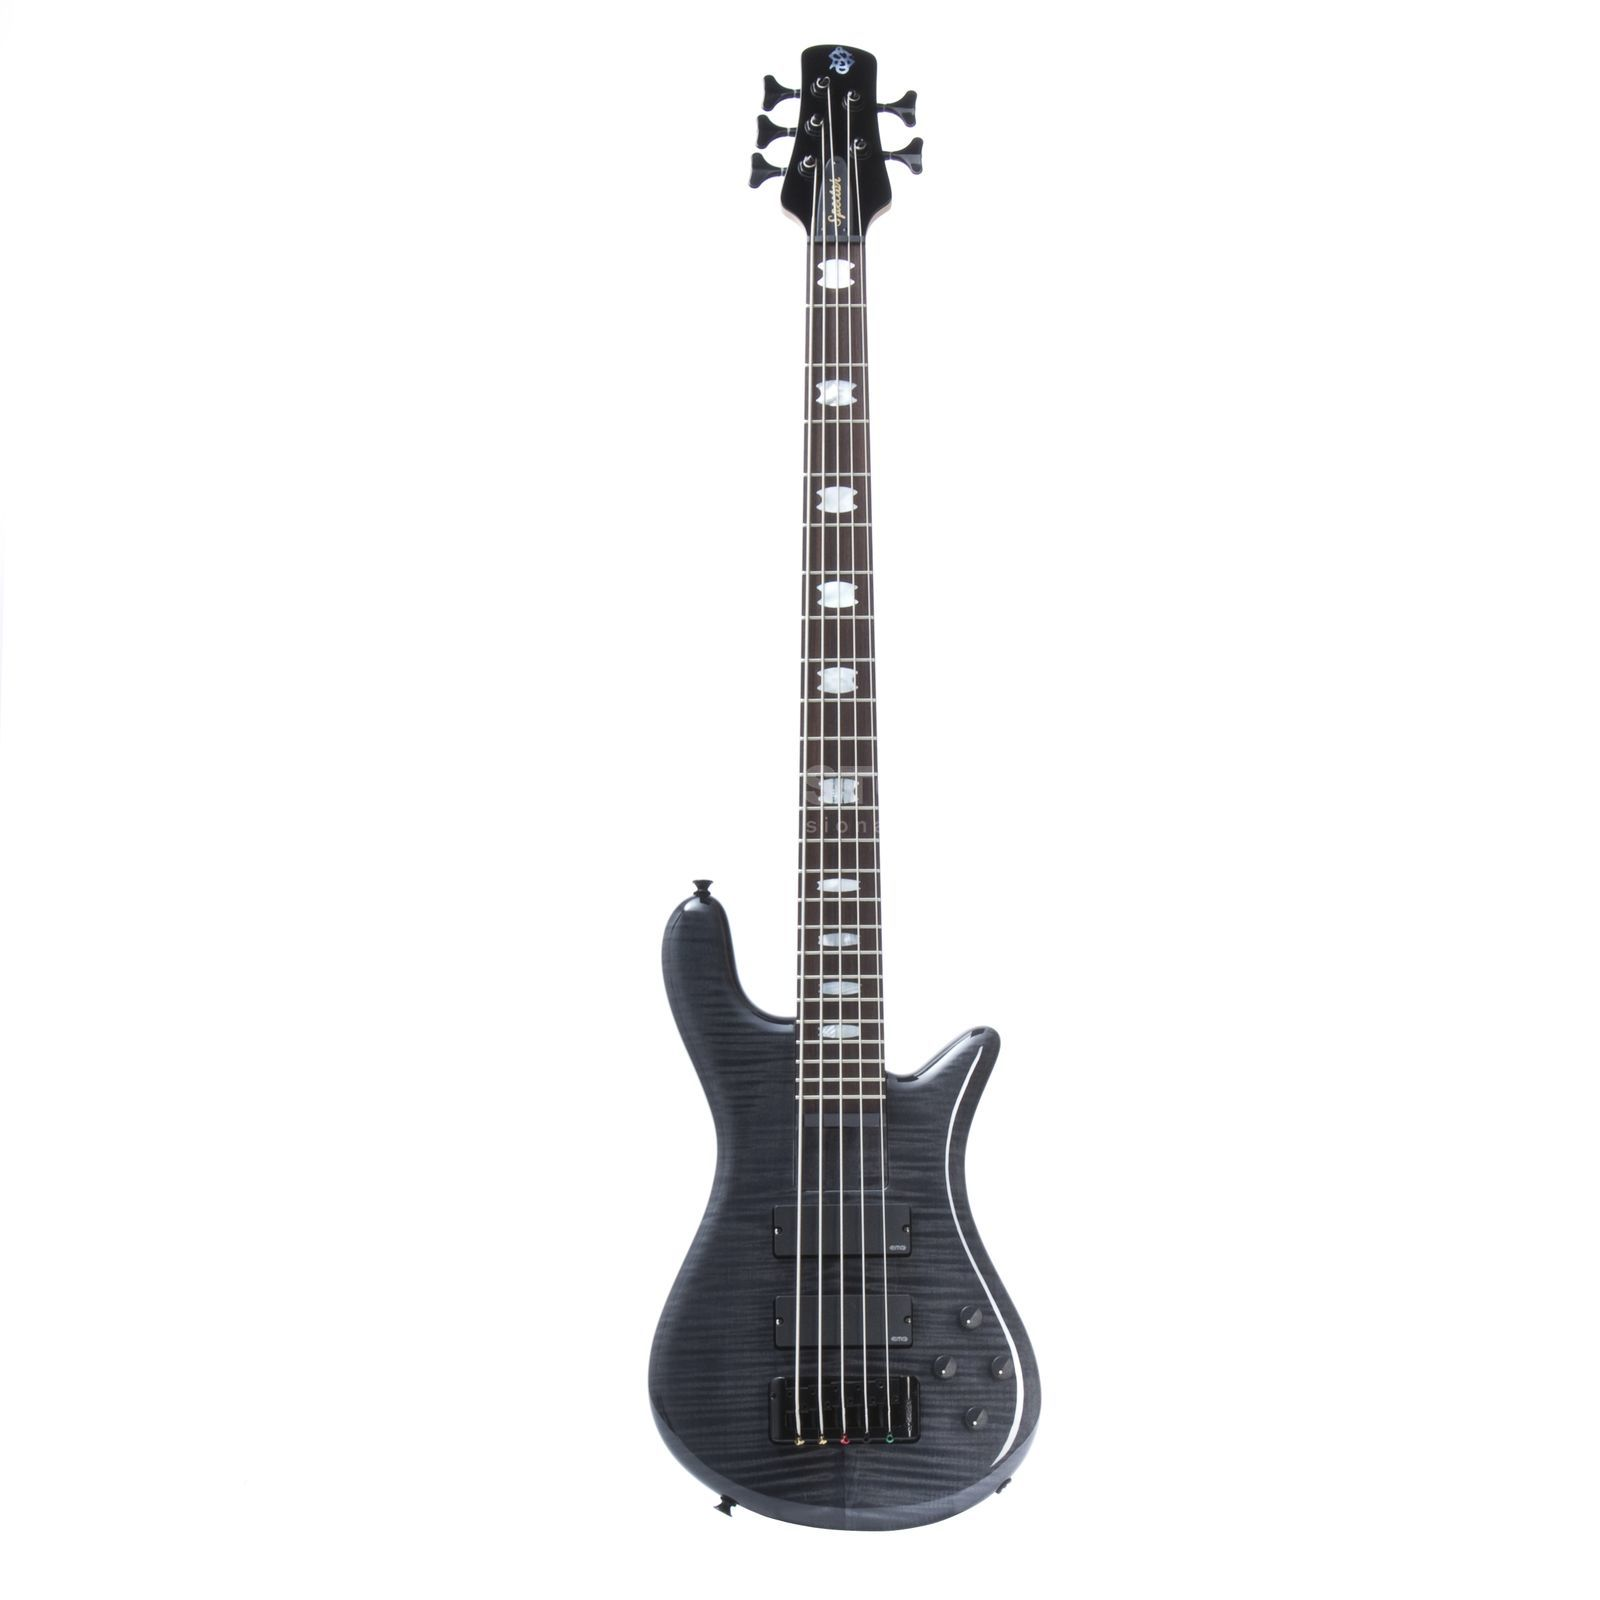 Spector ReBop 5 DLX 40CS Black Stain Gloss Product Image